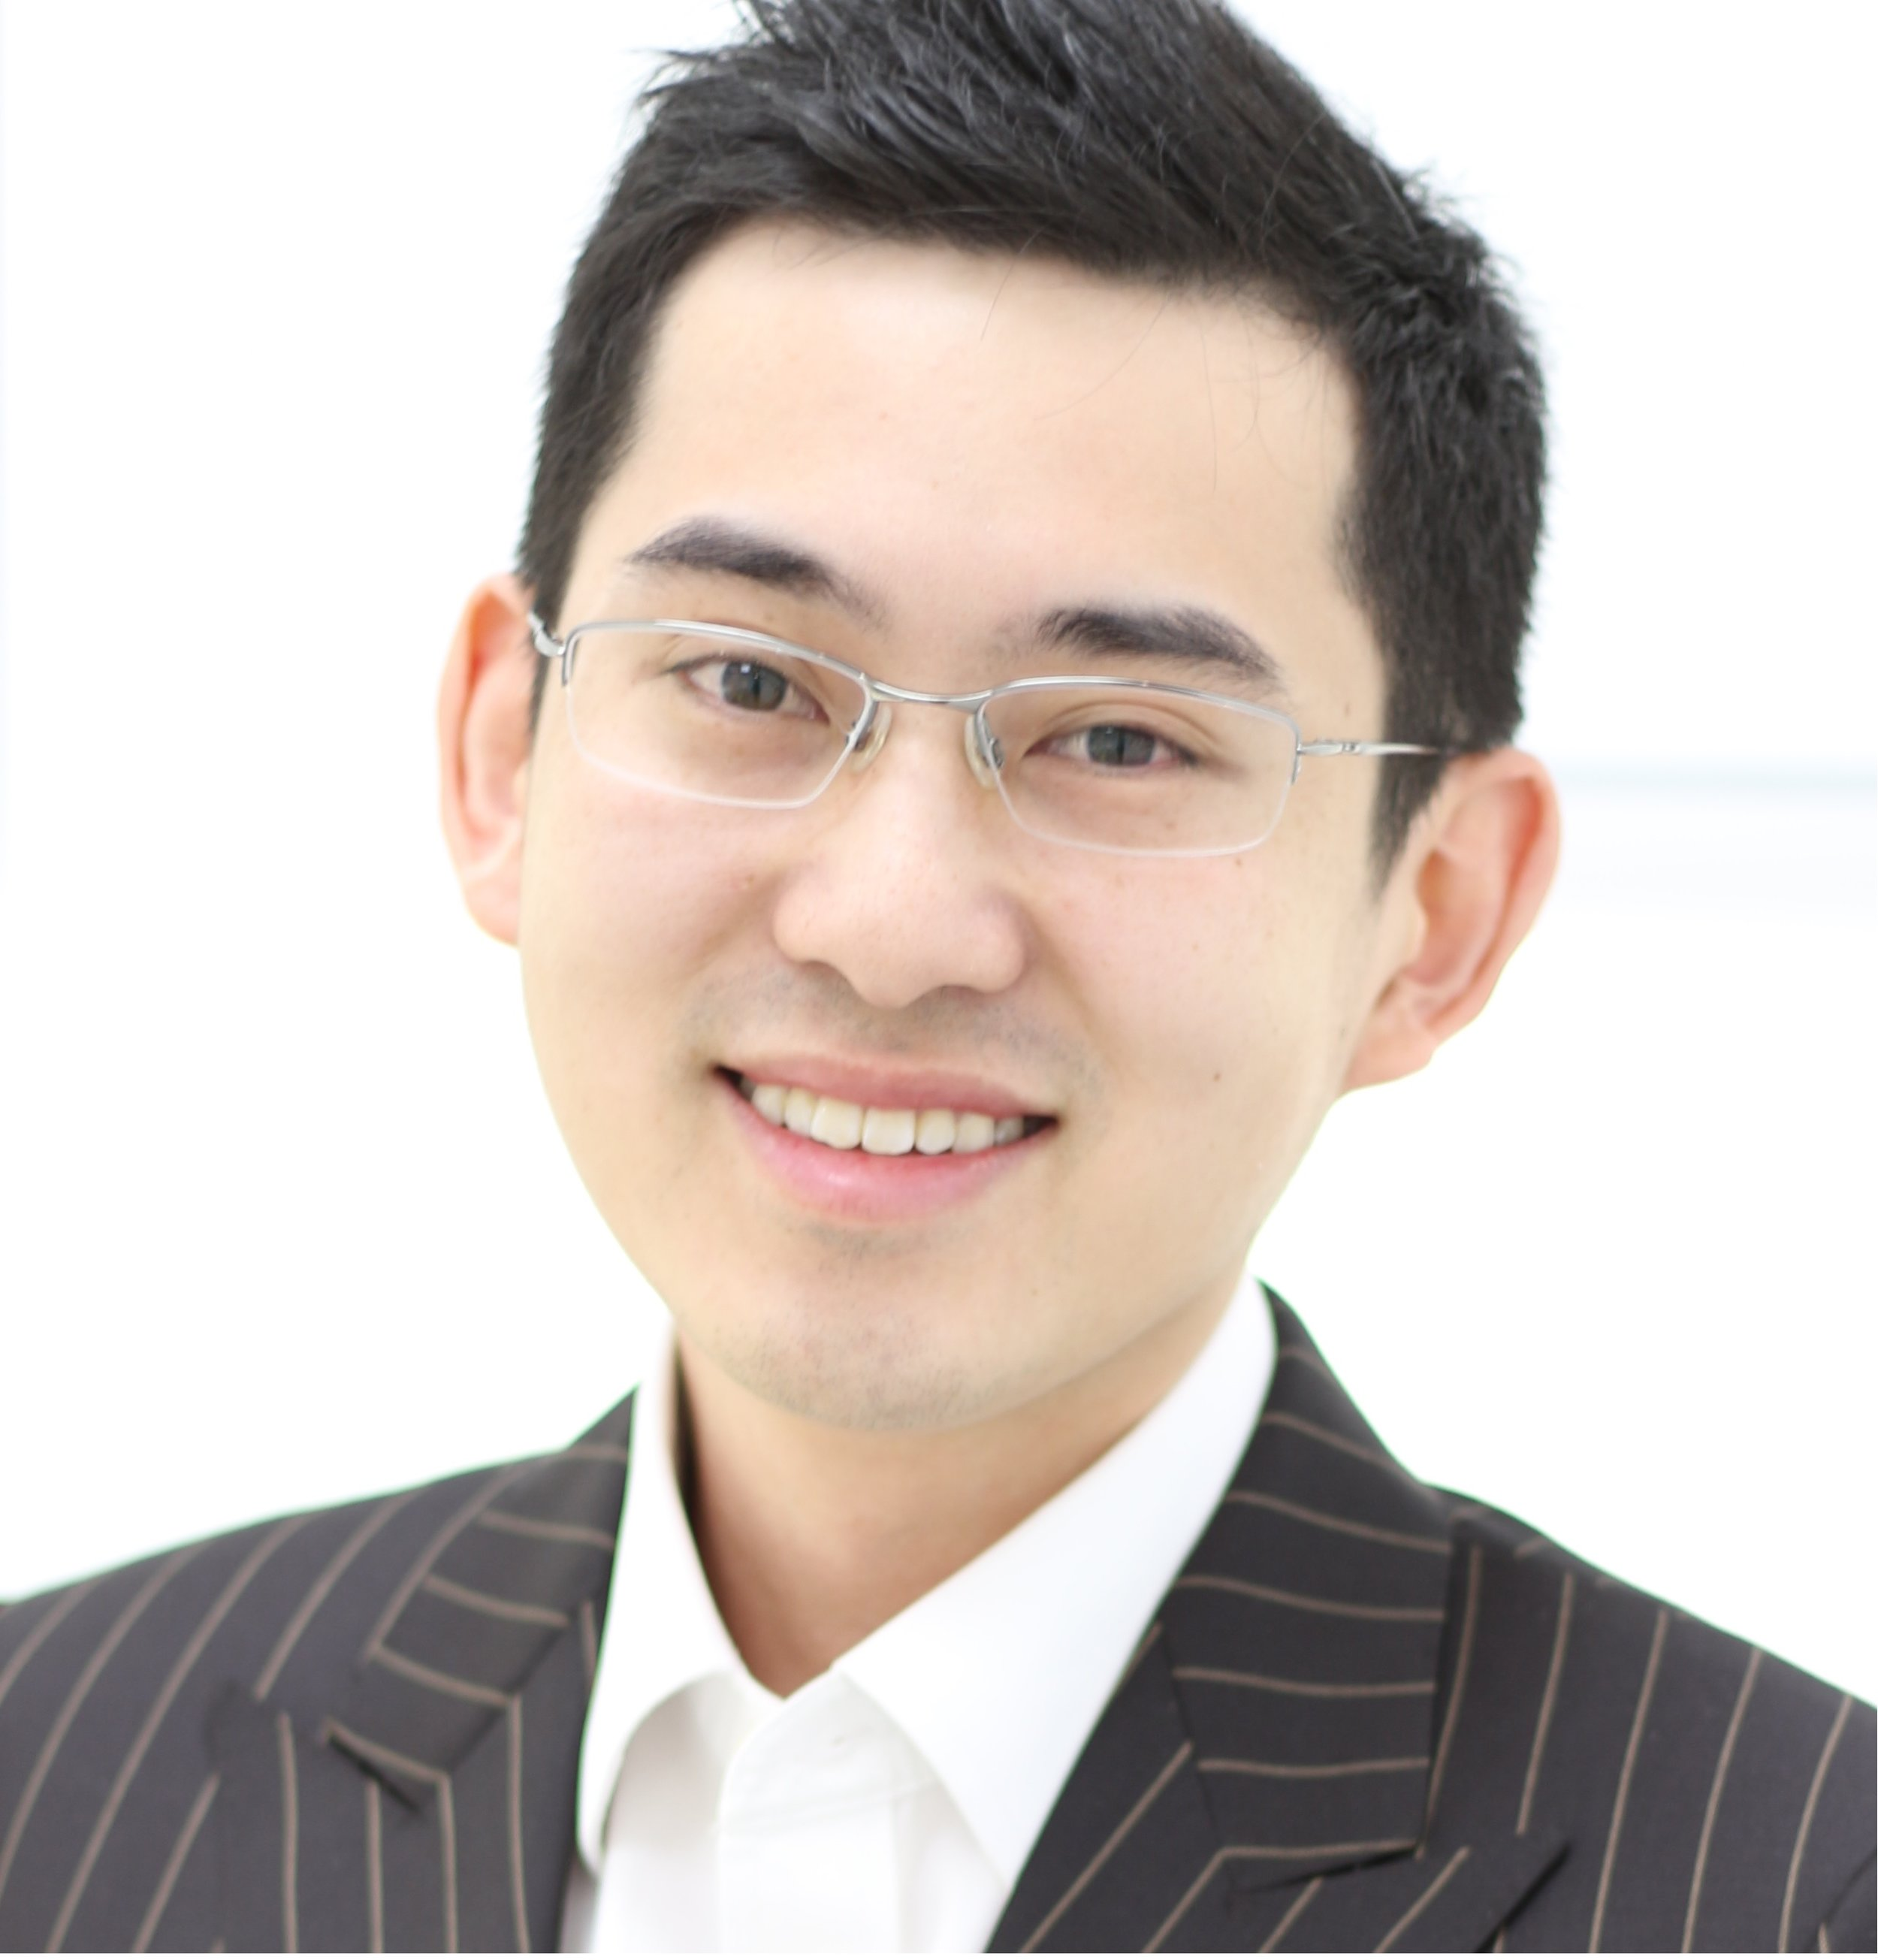 DR Quincy Cheuk